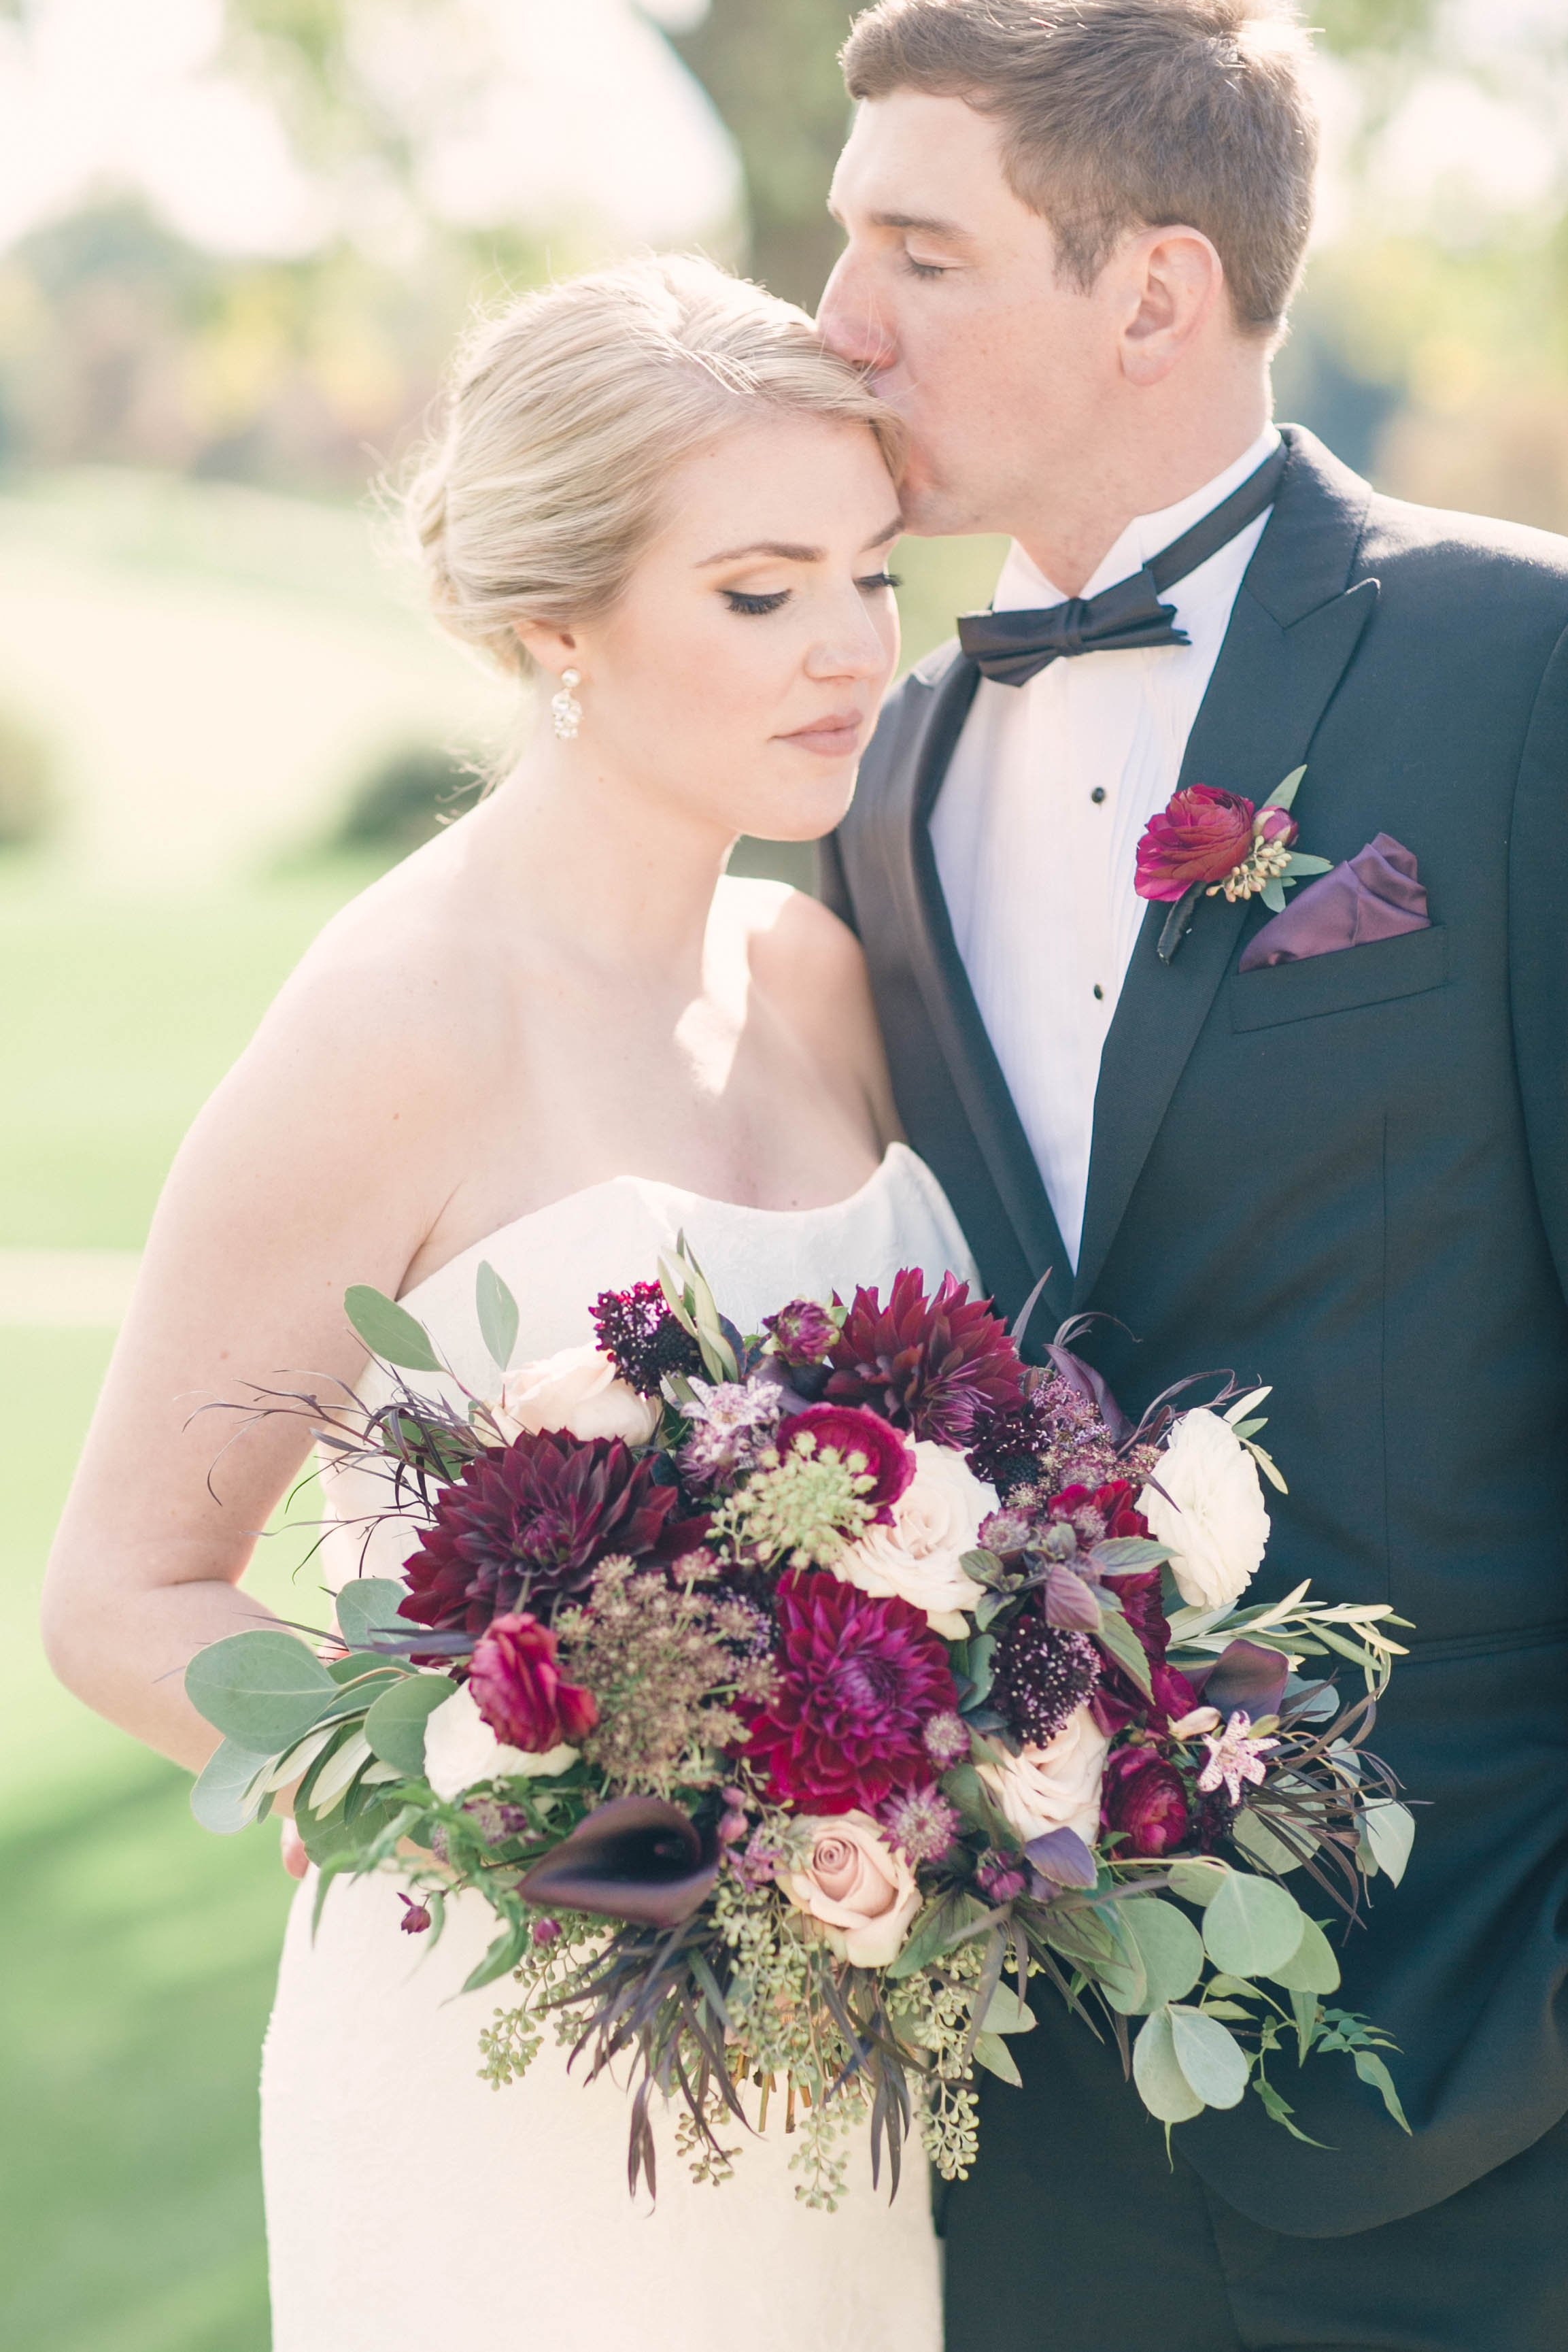 View More: http://kristengardner.pass.us/hayley-and-matt-wedding